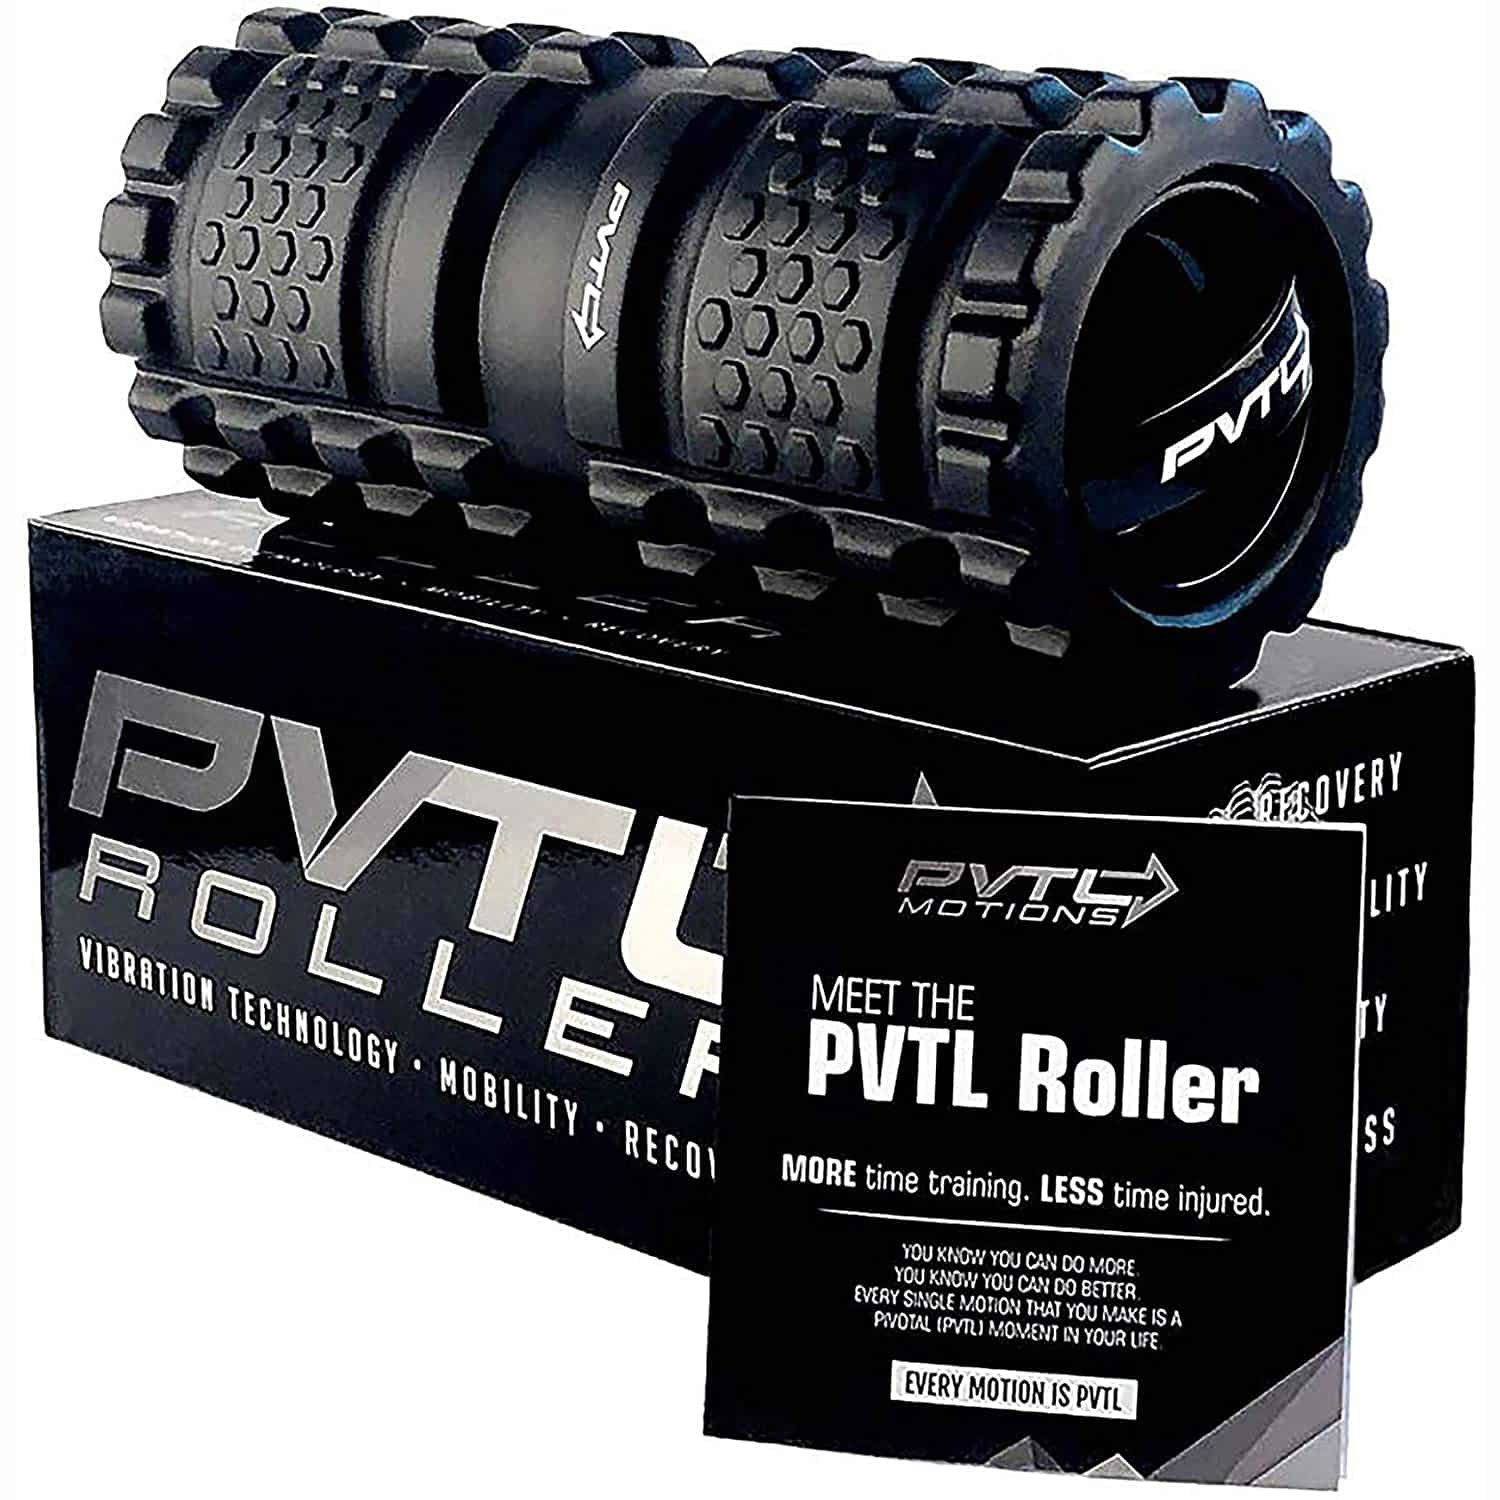 PVTL Vibrating Foam Roller 3 Speed Best Vibranting Foam Roller Rechargeable Recovery Therapeutic Electric Massager Deep Tissue Massage 1 Year Guarantee Free